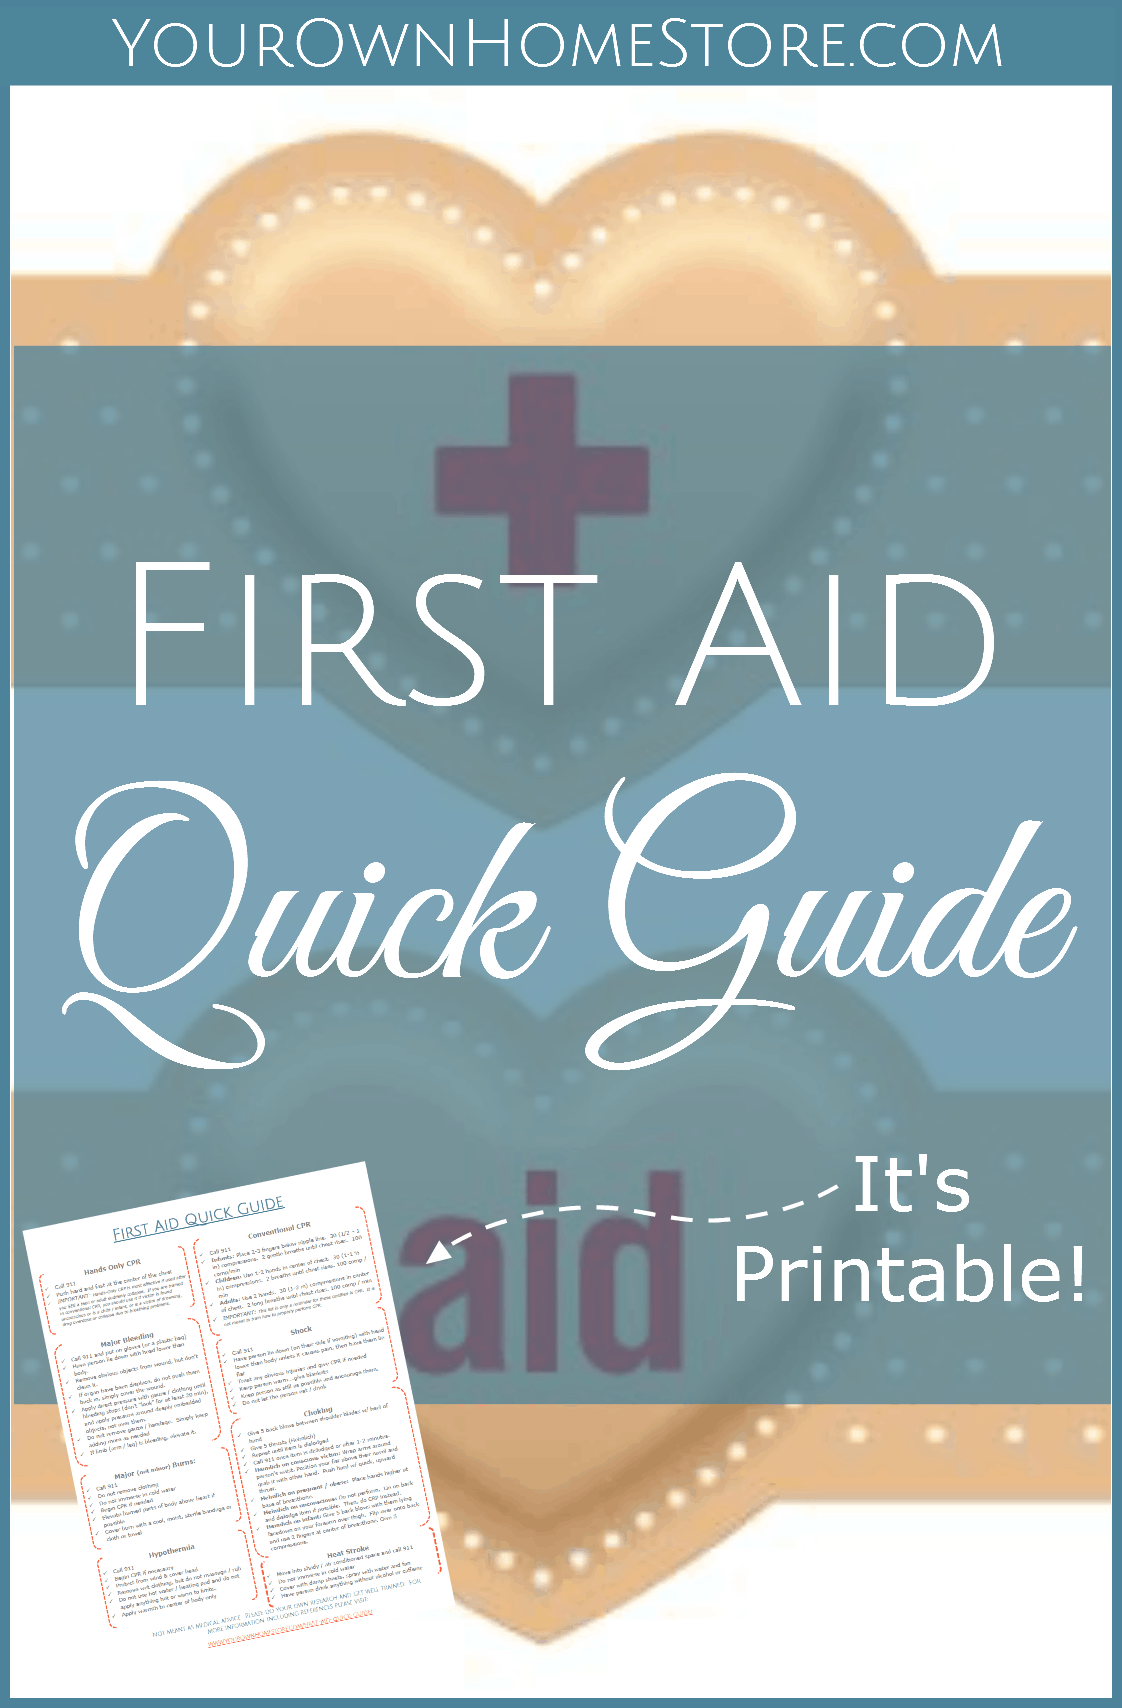 This is a graphic of Dynamite Free Printable First Aid Guide